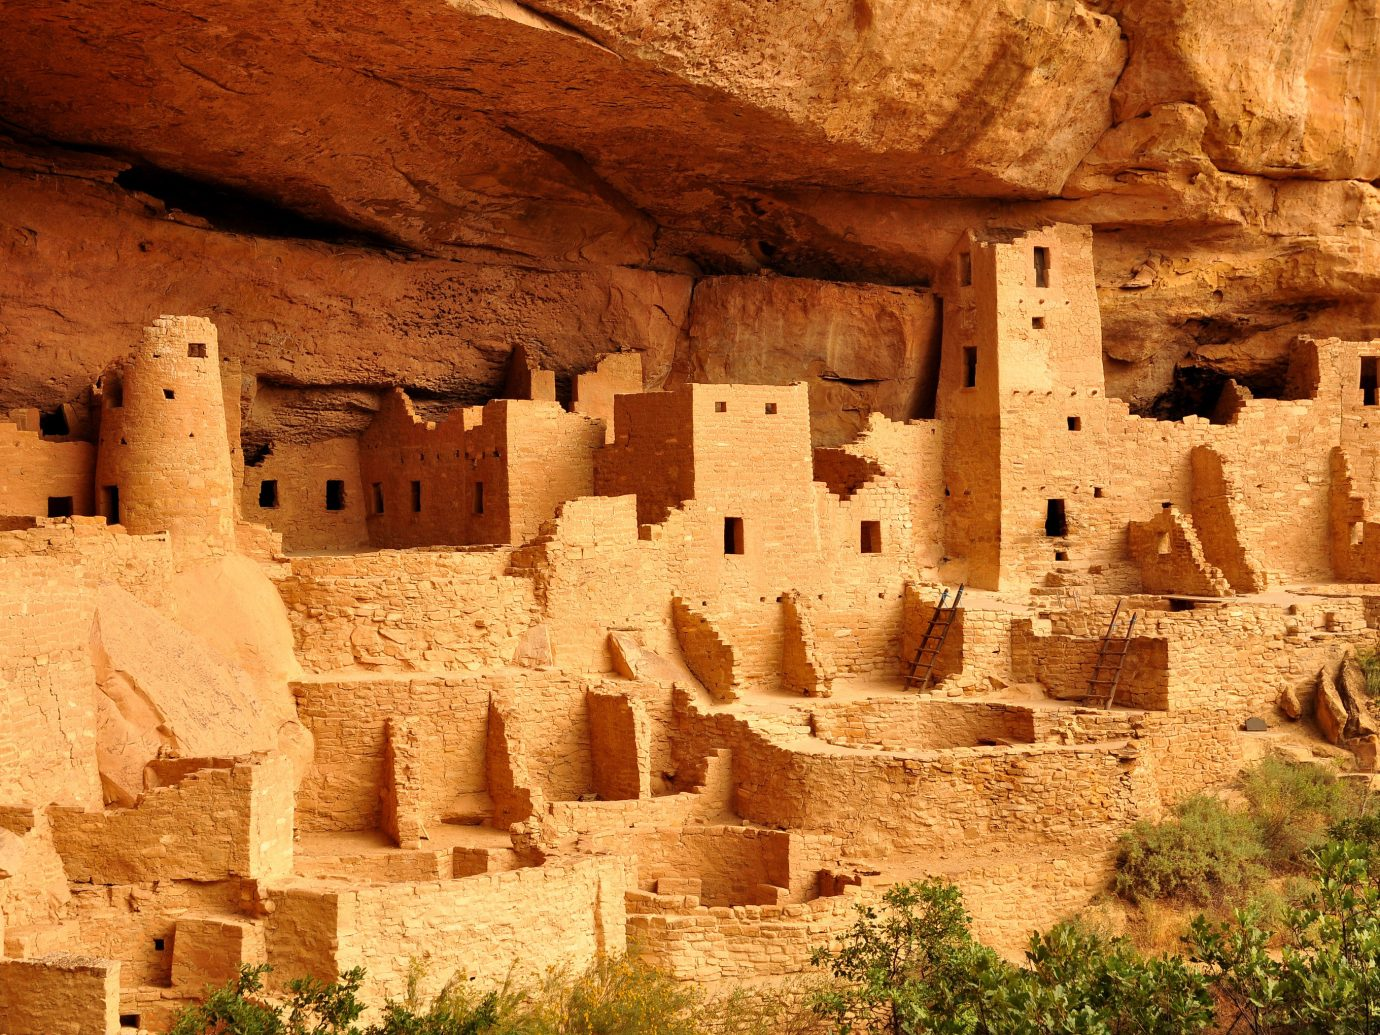 Trip Ideas Nature cliff historic site Ruins archaeological site outdoor ancient history egyptian temple wadi arch fortification temple cliff dwelling middle ages formation monastery history unesco world heritage site stone